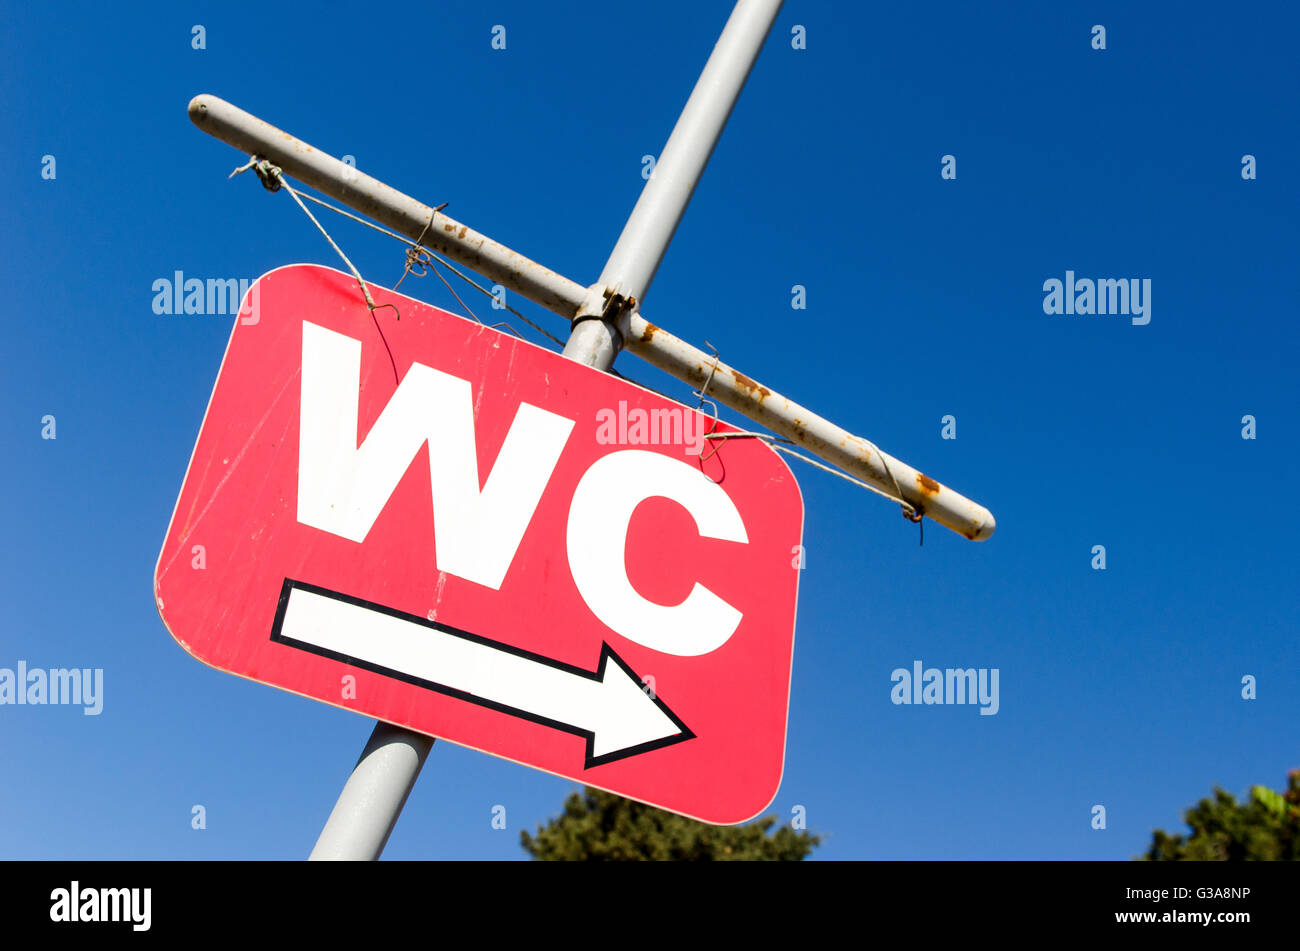 Sign for public toilets in the city of Kyrenia, Northern Cyprus. - Stock Image